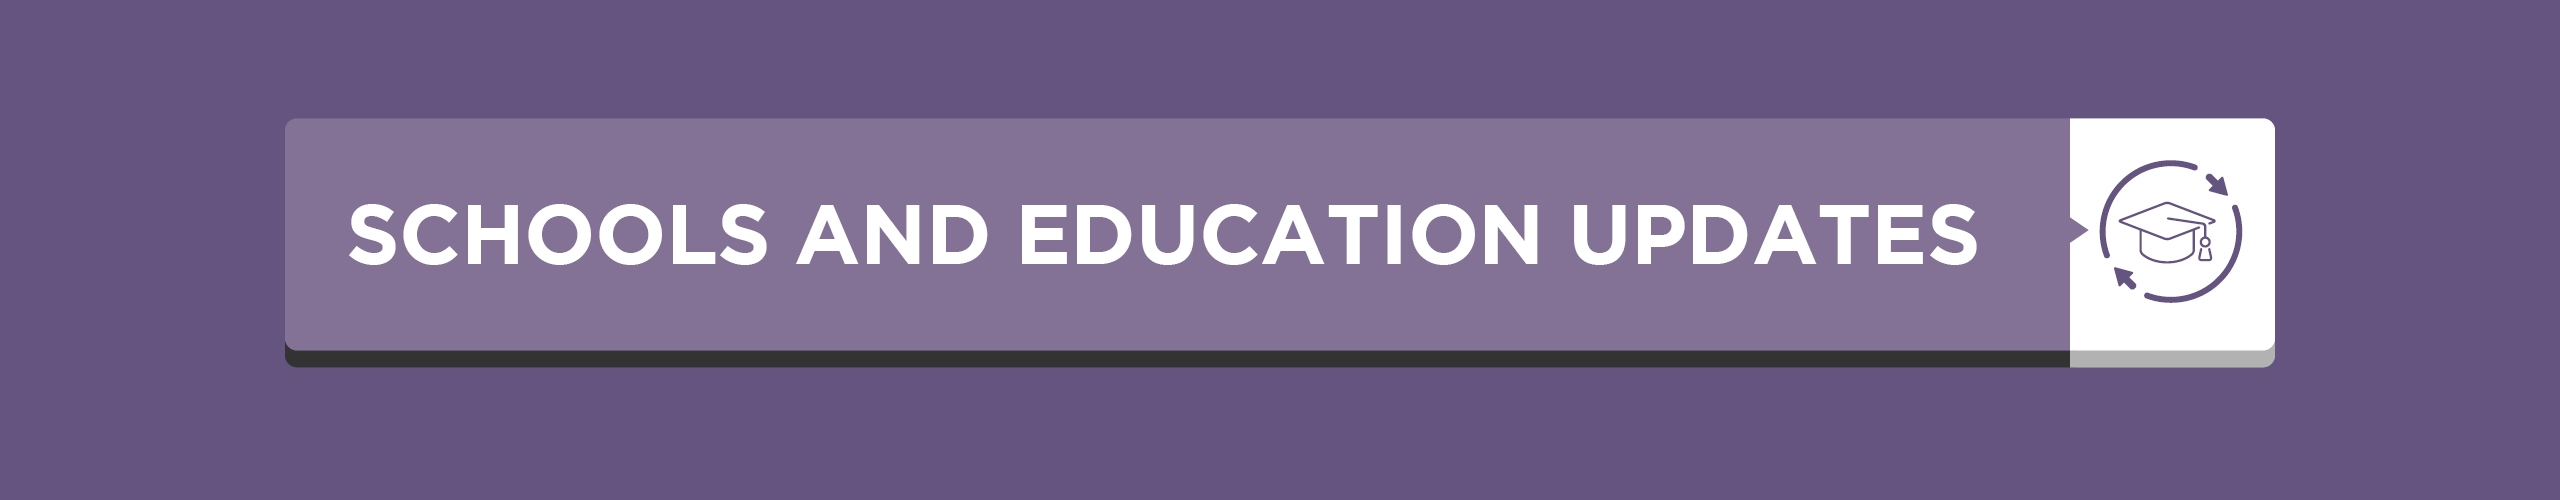 Schools and Education Updates